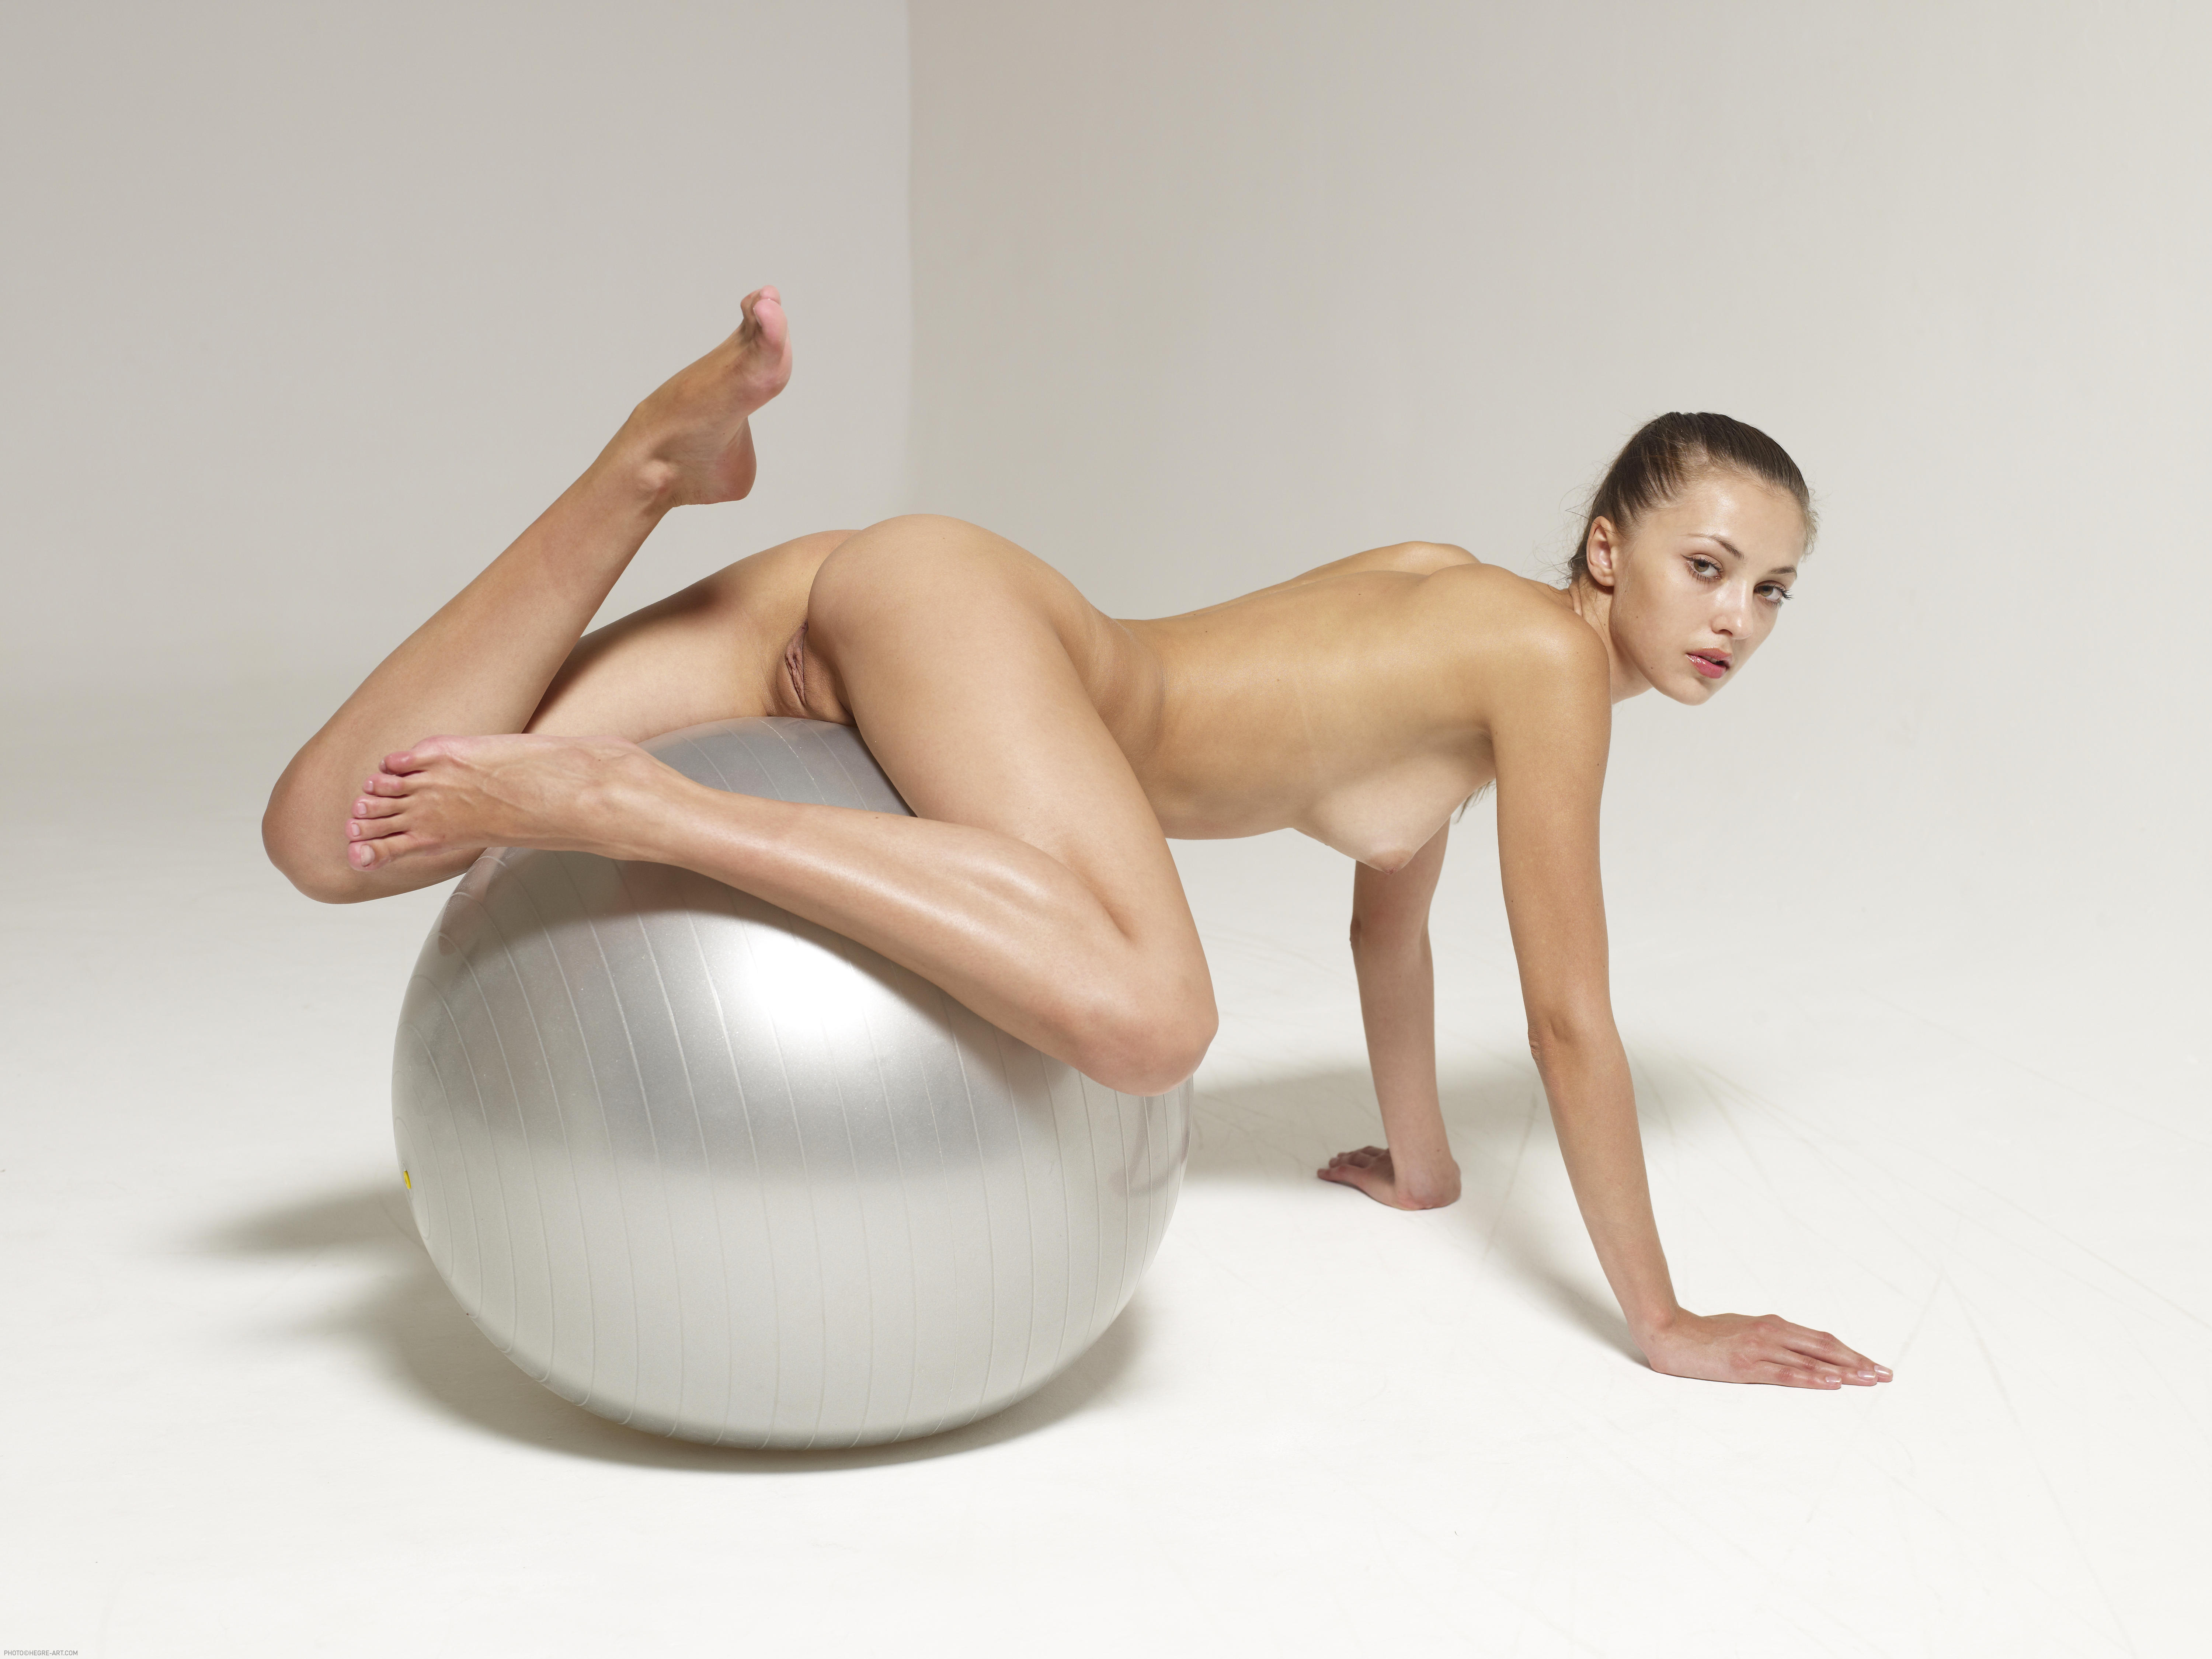 exercise ball naked